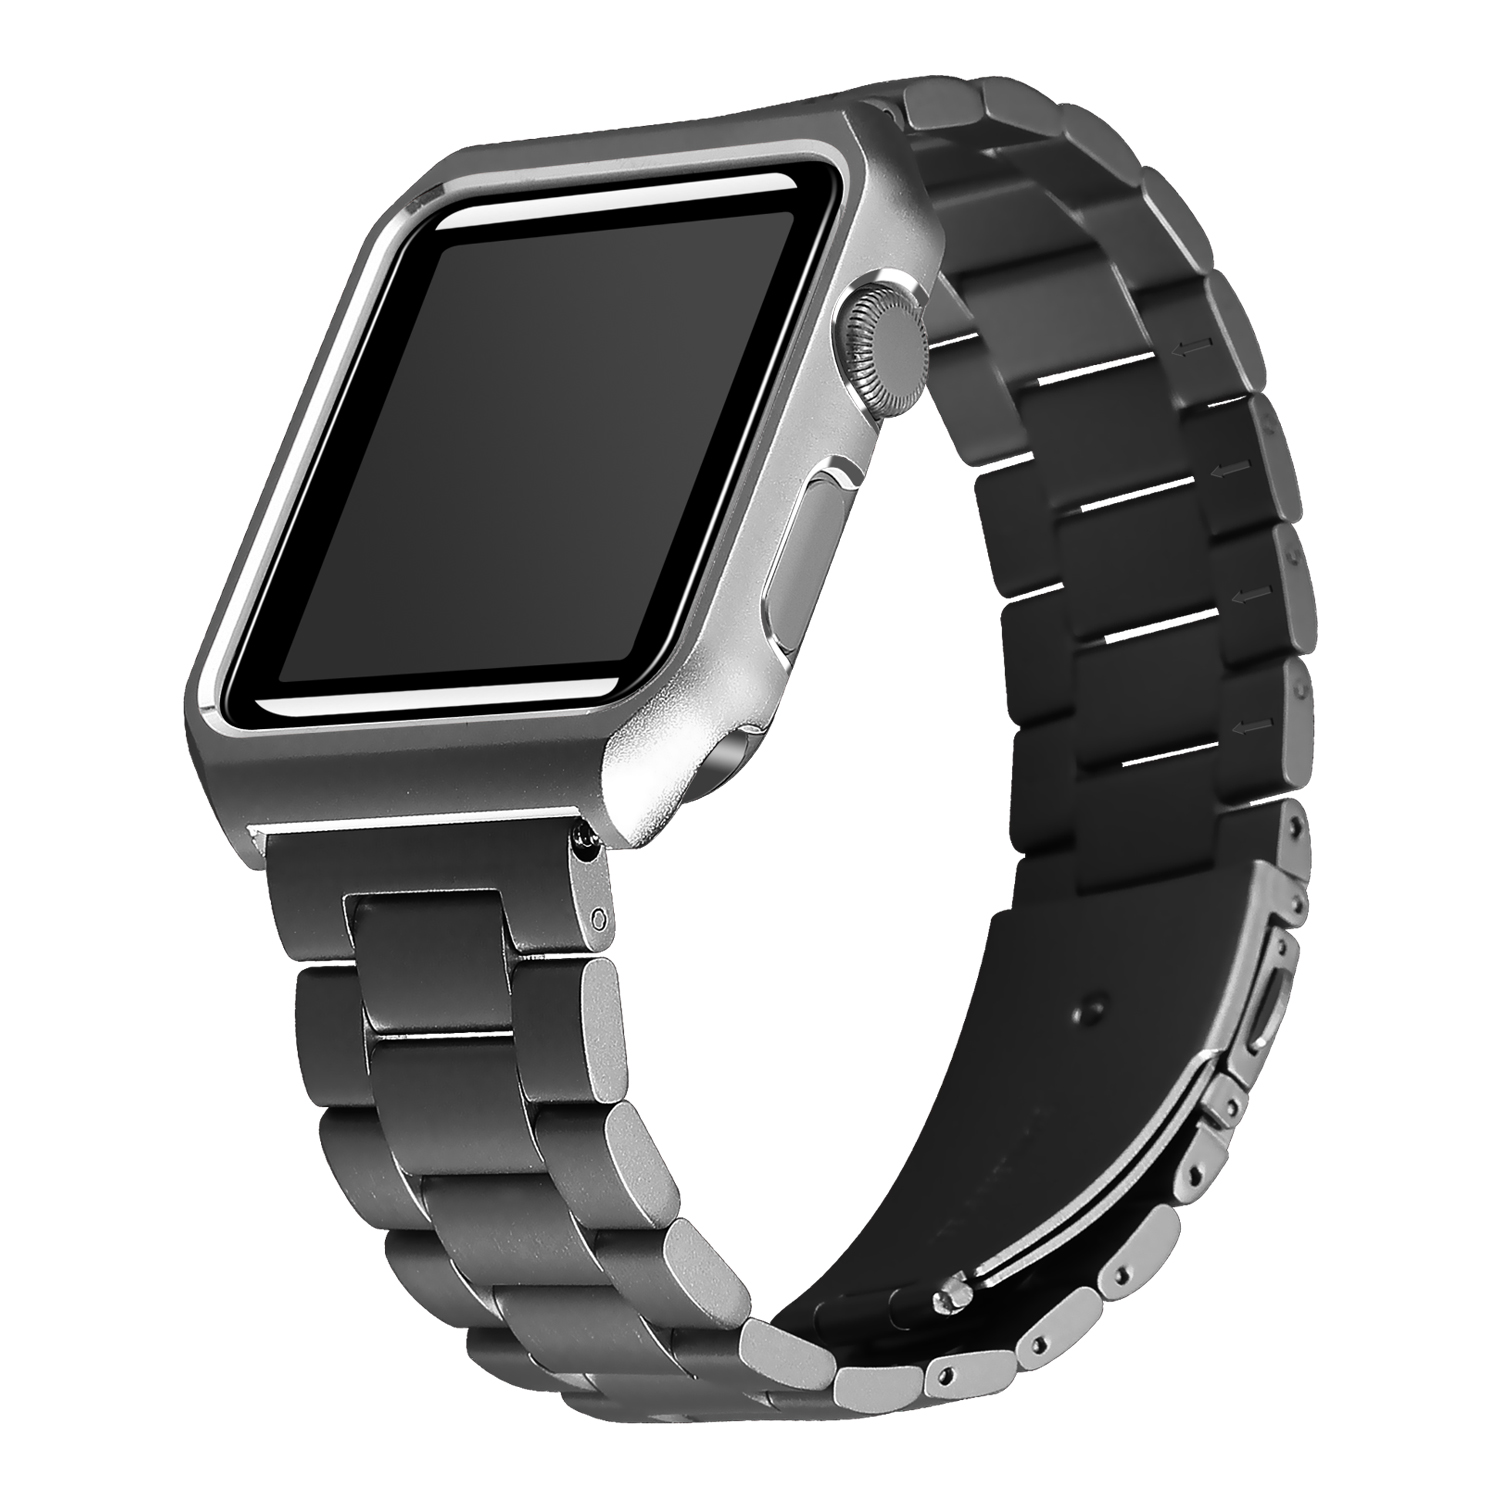 JANSIN Stainless Steel watchband with Protective Case for Apple Watch 38mm/42mm Metal Replacement strap for iwatch Series 3 2 1 jansin 22mm watchband for garmin fenix 5 easy fit silicone replacement band sports silicone wristband for forerunner 935 gps